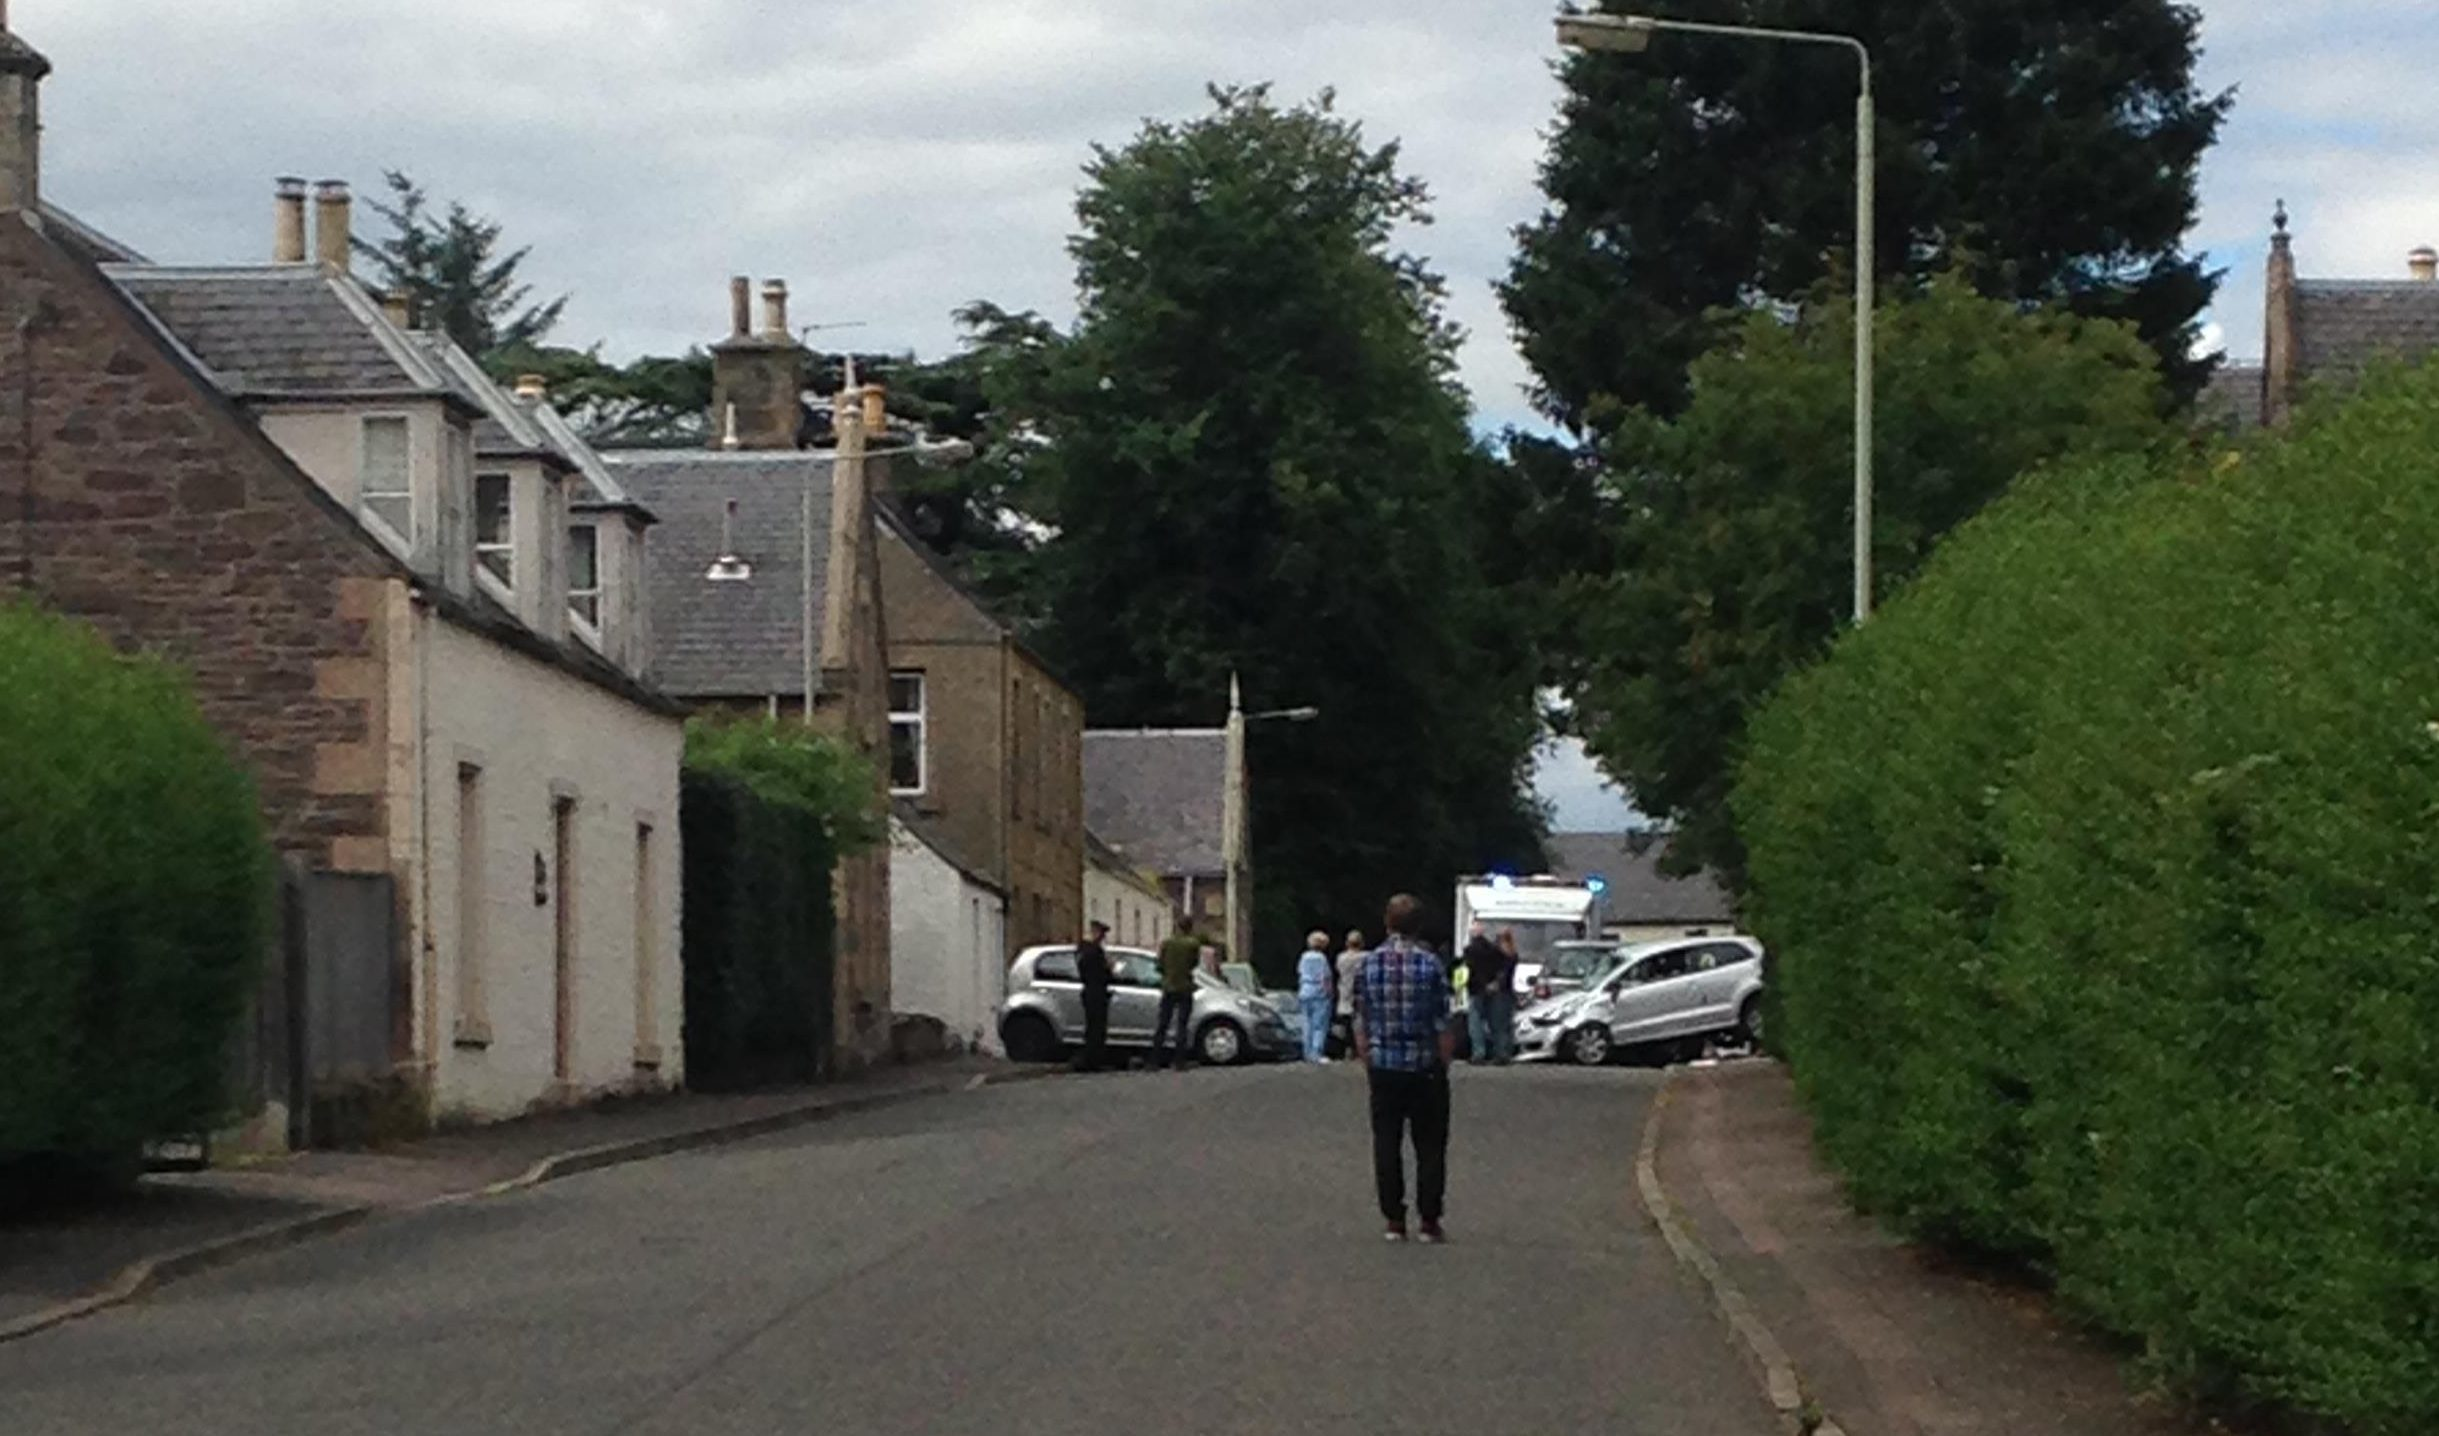 Accident in Montrose Road, Auchterarder.